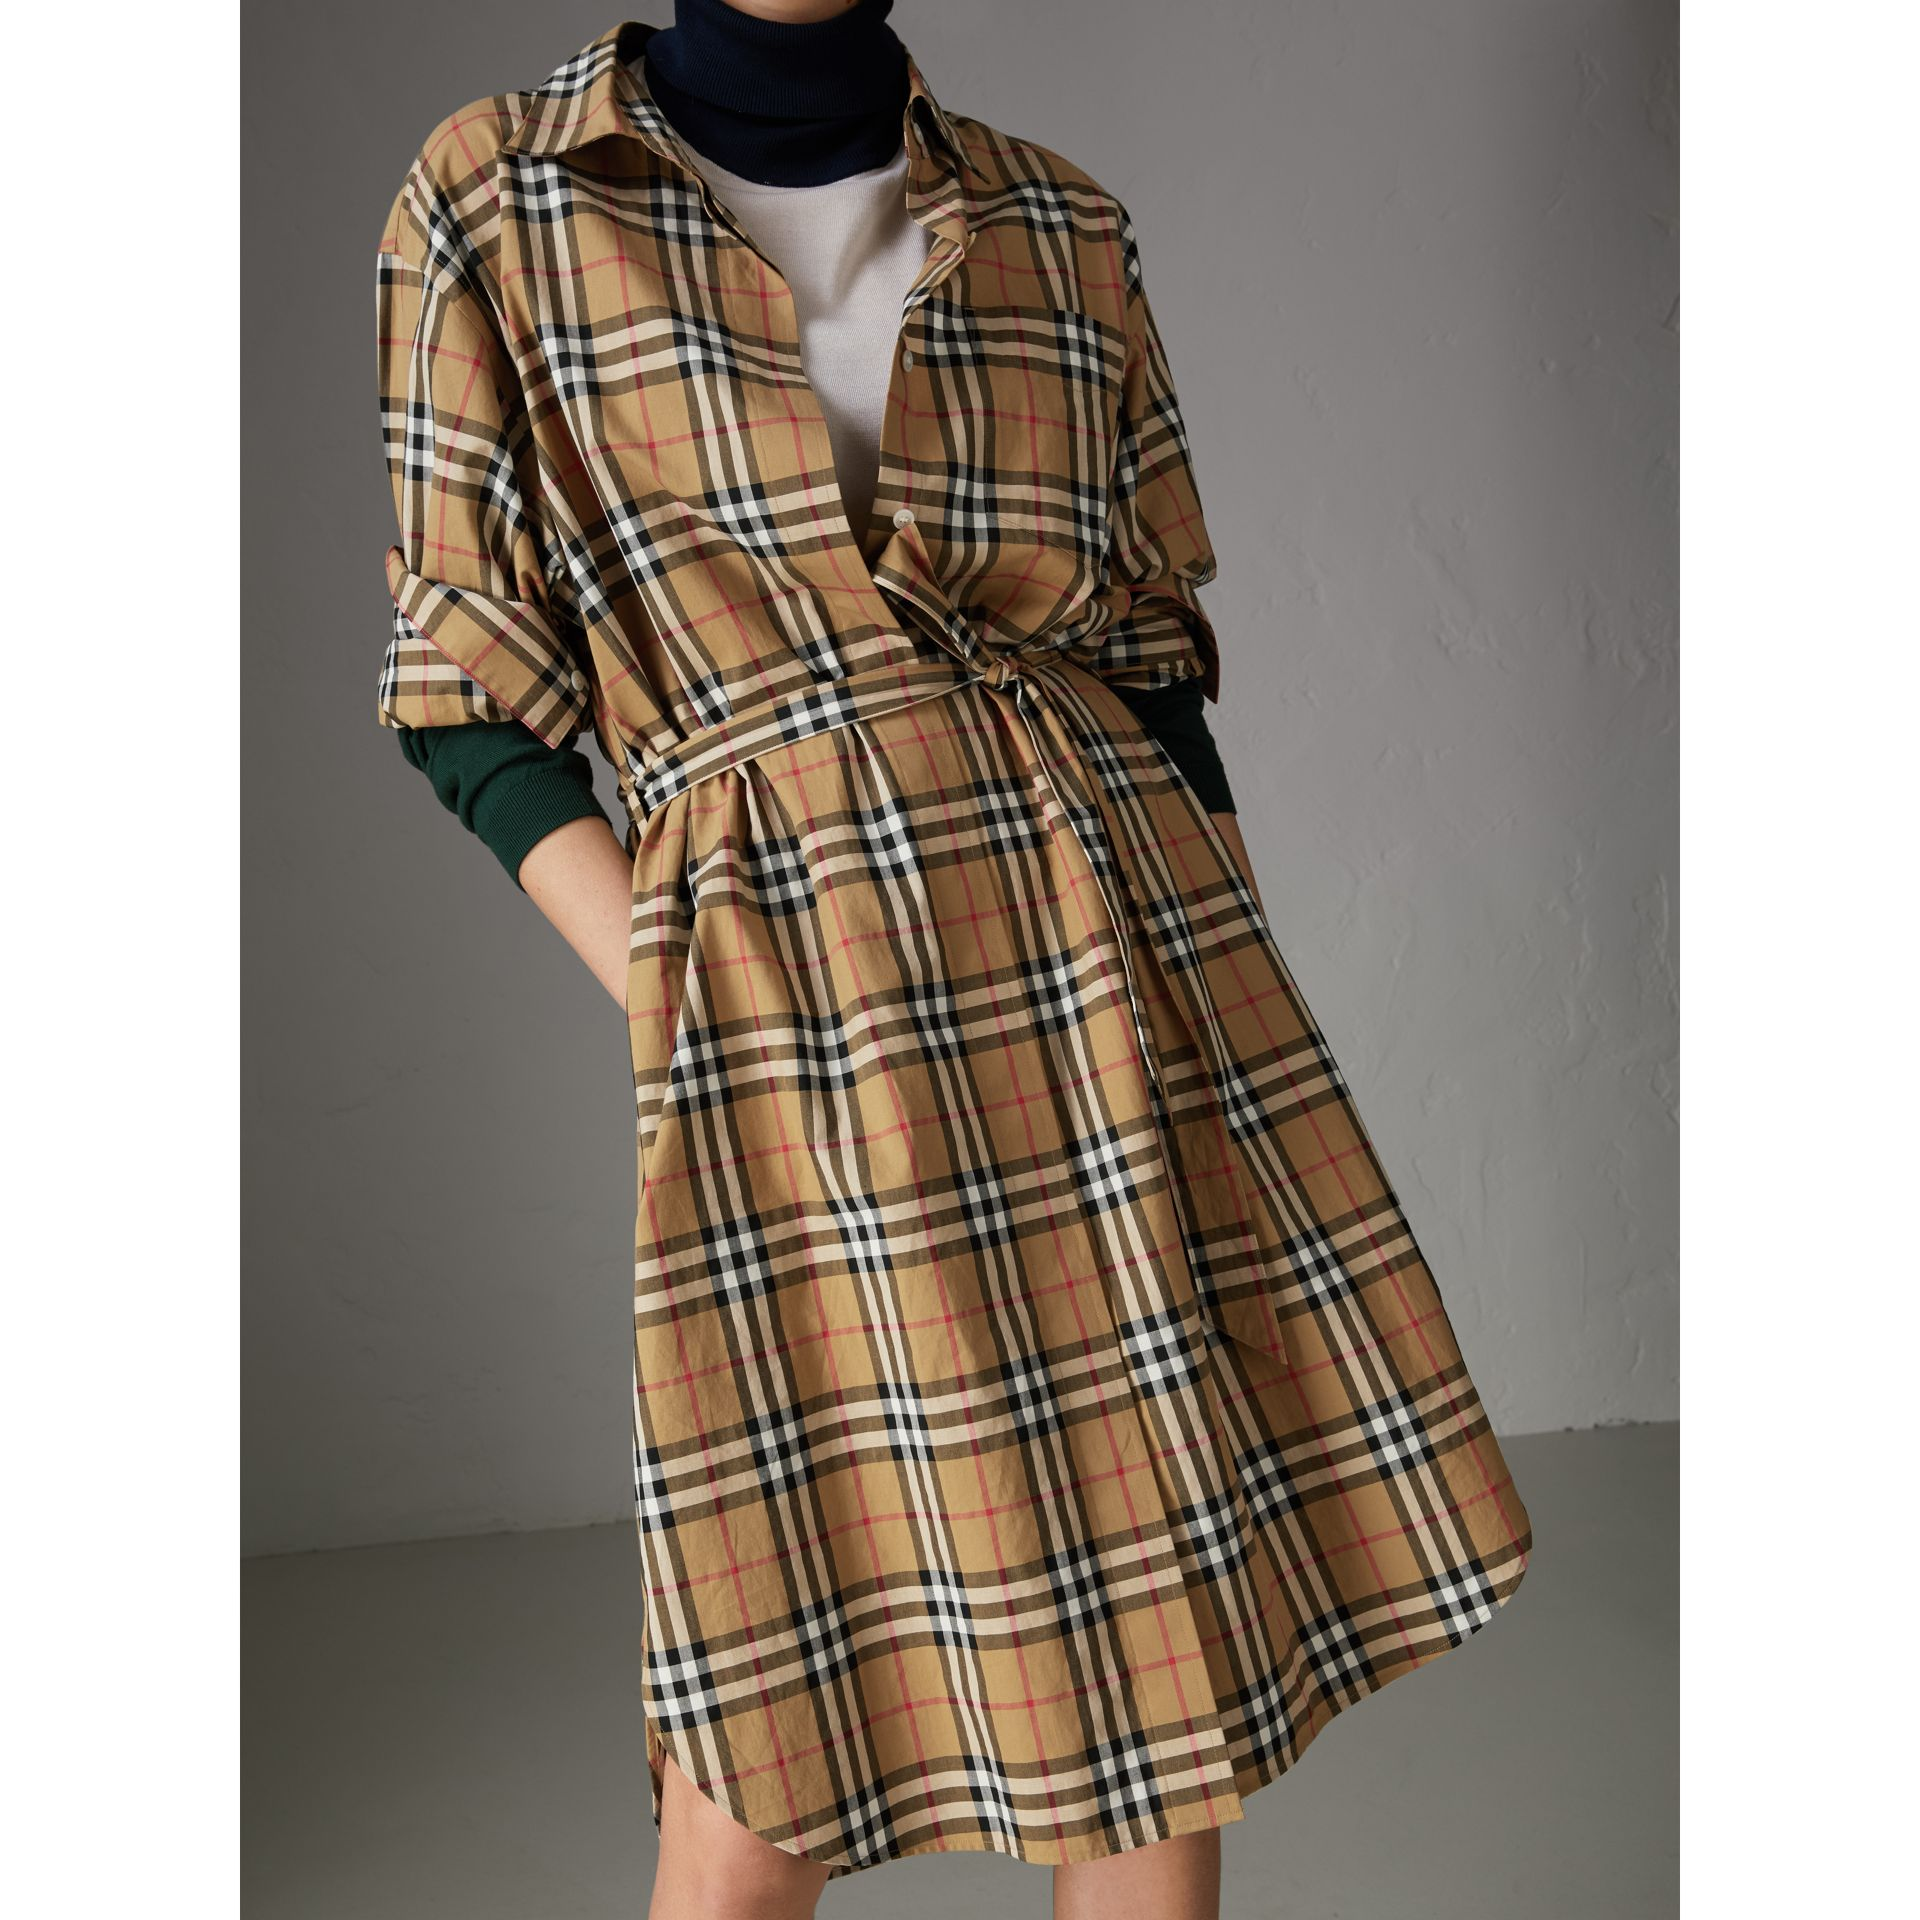 Tie-waist Vintage Check Cotton Shirt Dress in Antique Yellow - Women | Burberry Canada - gallery image 1